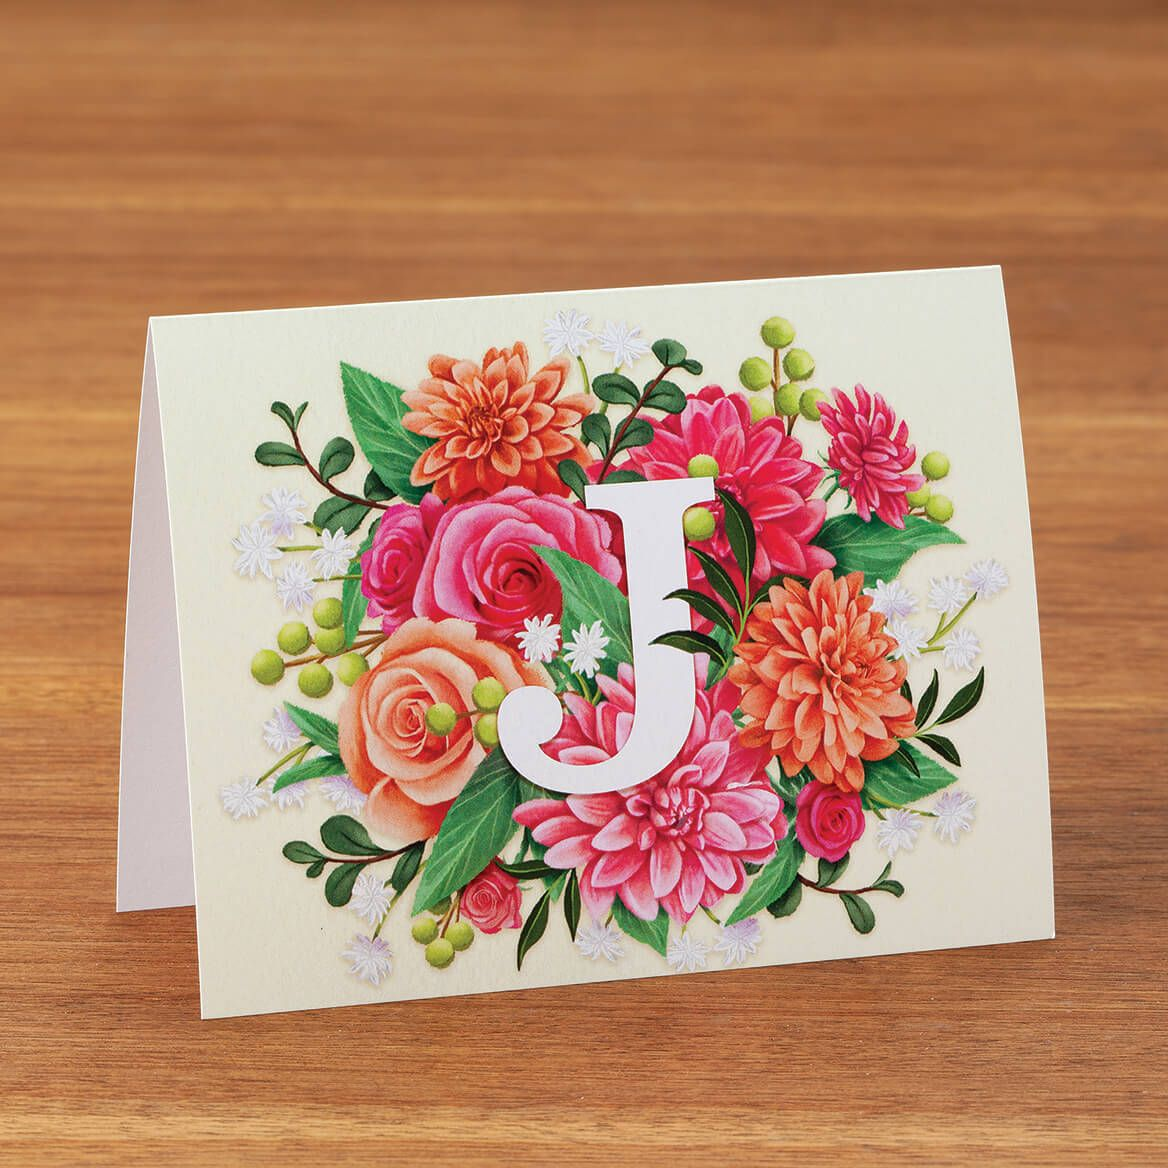 Personalized Floral Initial Notecards, Set of 20-372600